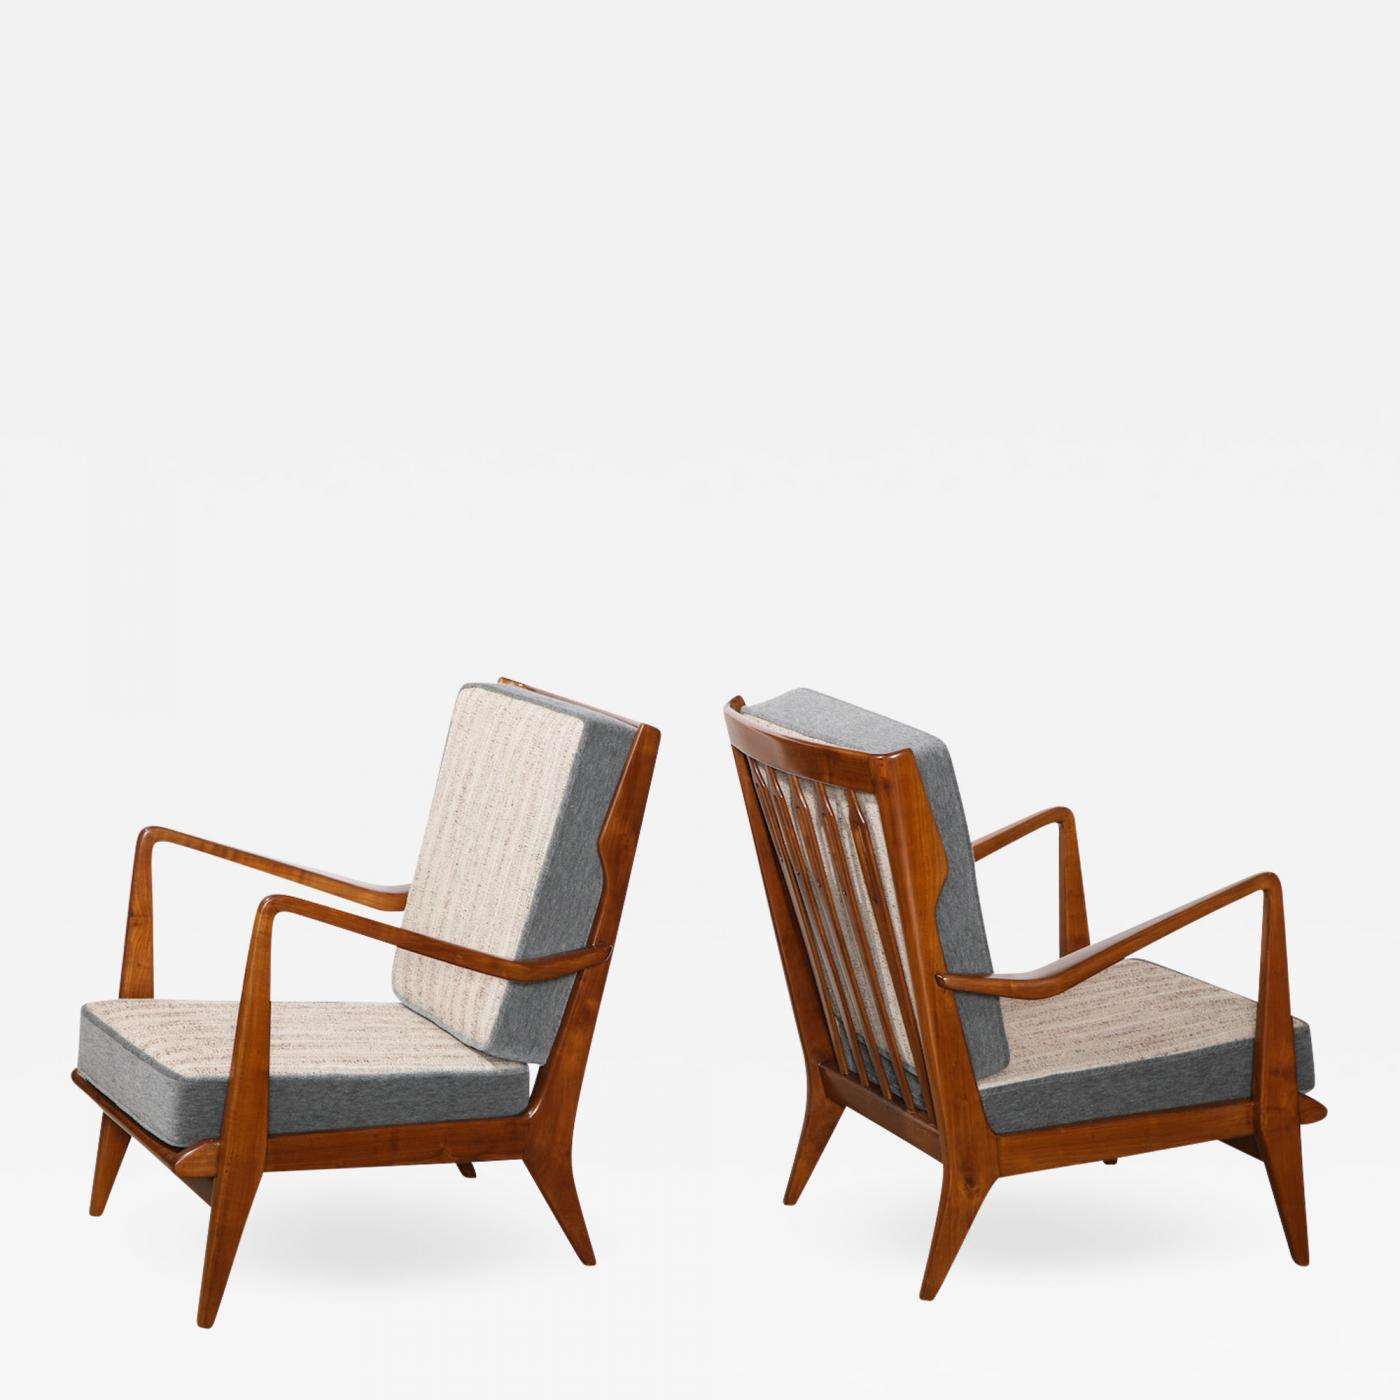 Rare Pair Of Open Arm Chairs By Gio Ponti For Cassina